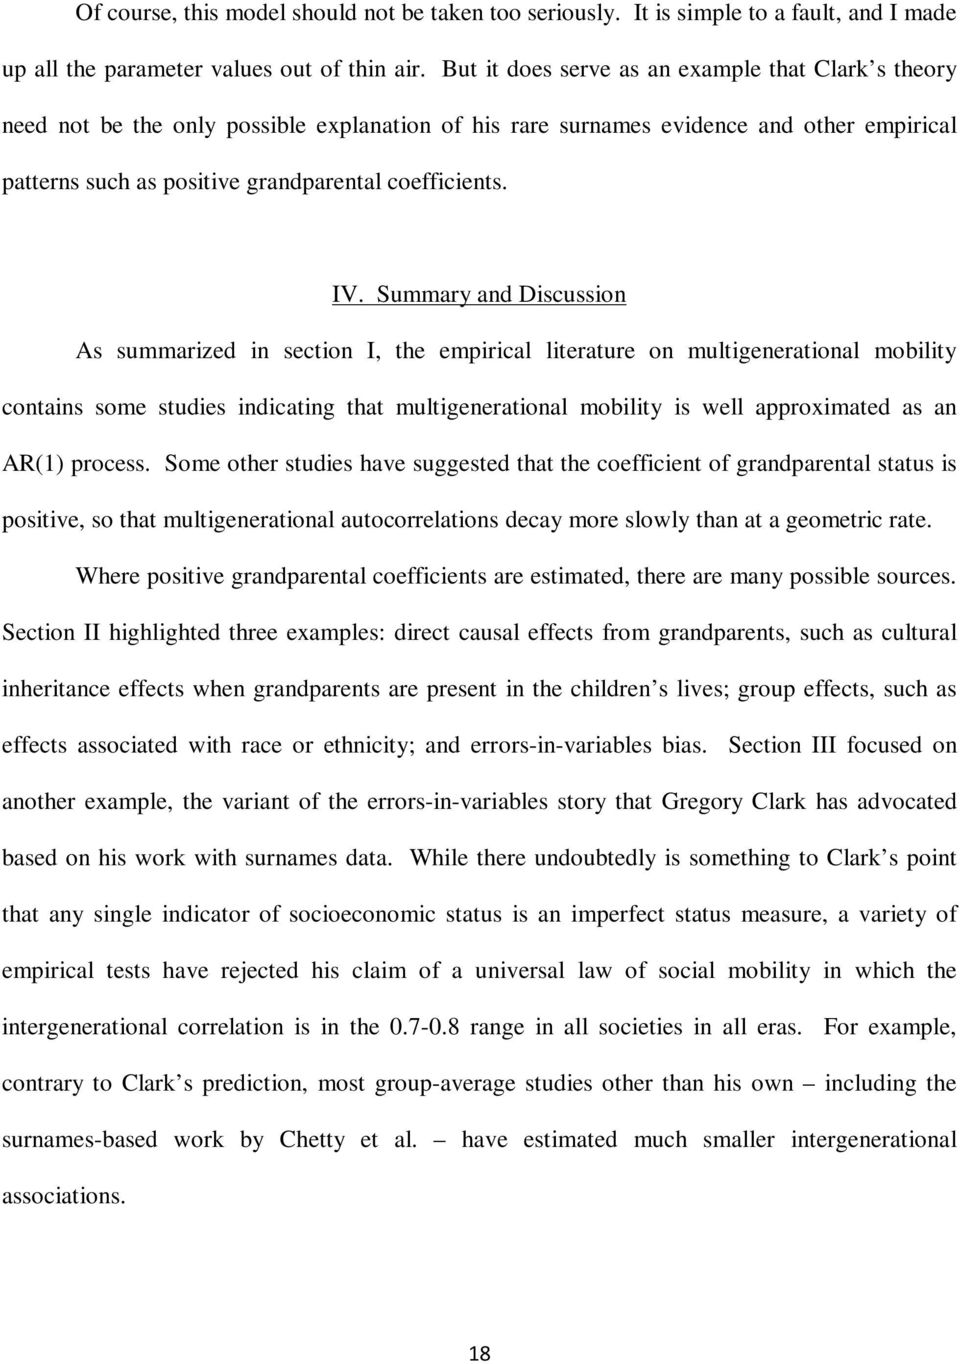 IV. Summary and Discussion As summarized in section I, the empirical literature on multigenerational mobility contains some studies indicating that multigenerational mobility is well approximated as